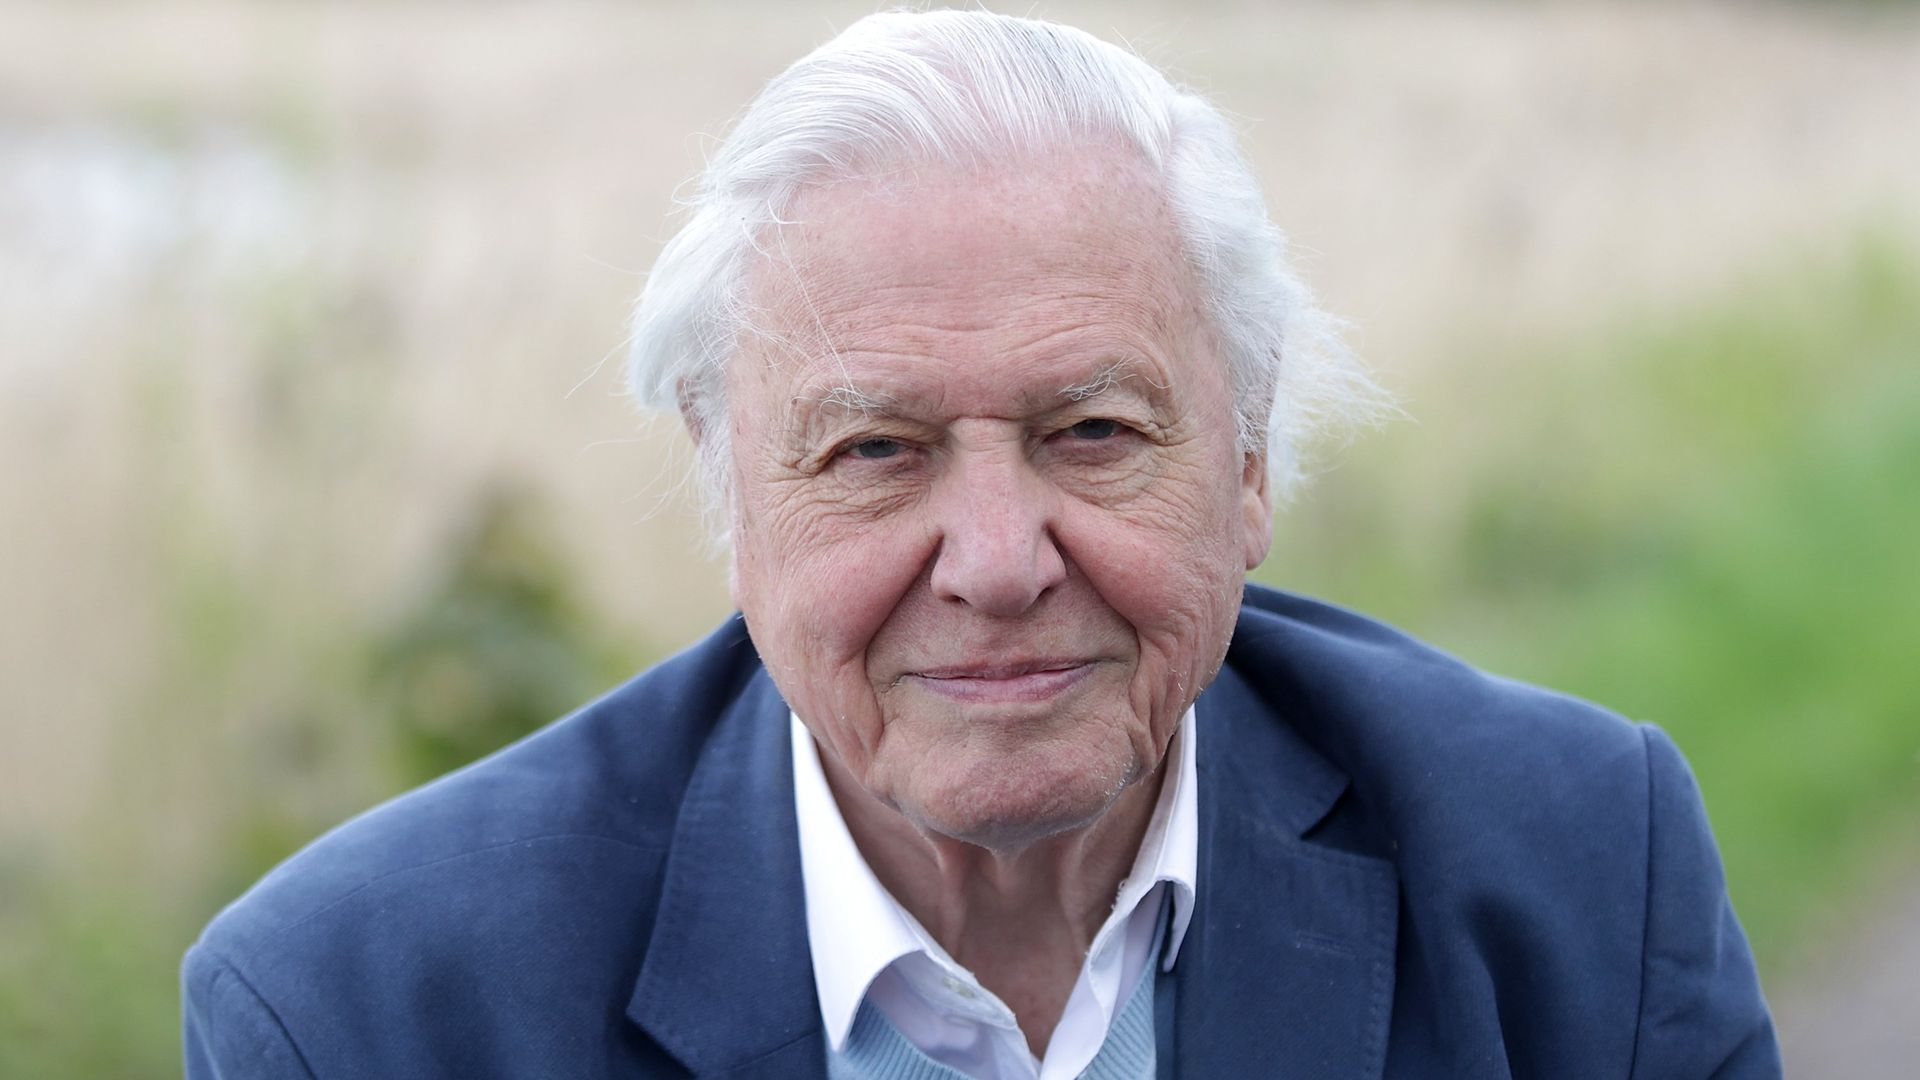 UCL Associate Professor Jean-Baptiste Gouyon says Sir David Attenborough cannot be replaced; his departure will require a total reinvention of the wildlife genre. - Credit: Danny Martindale